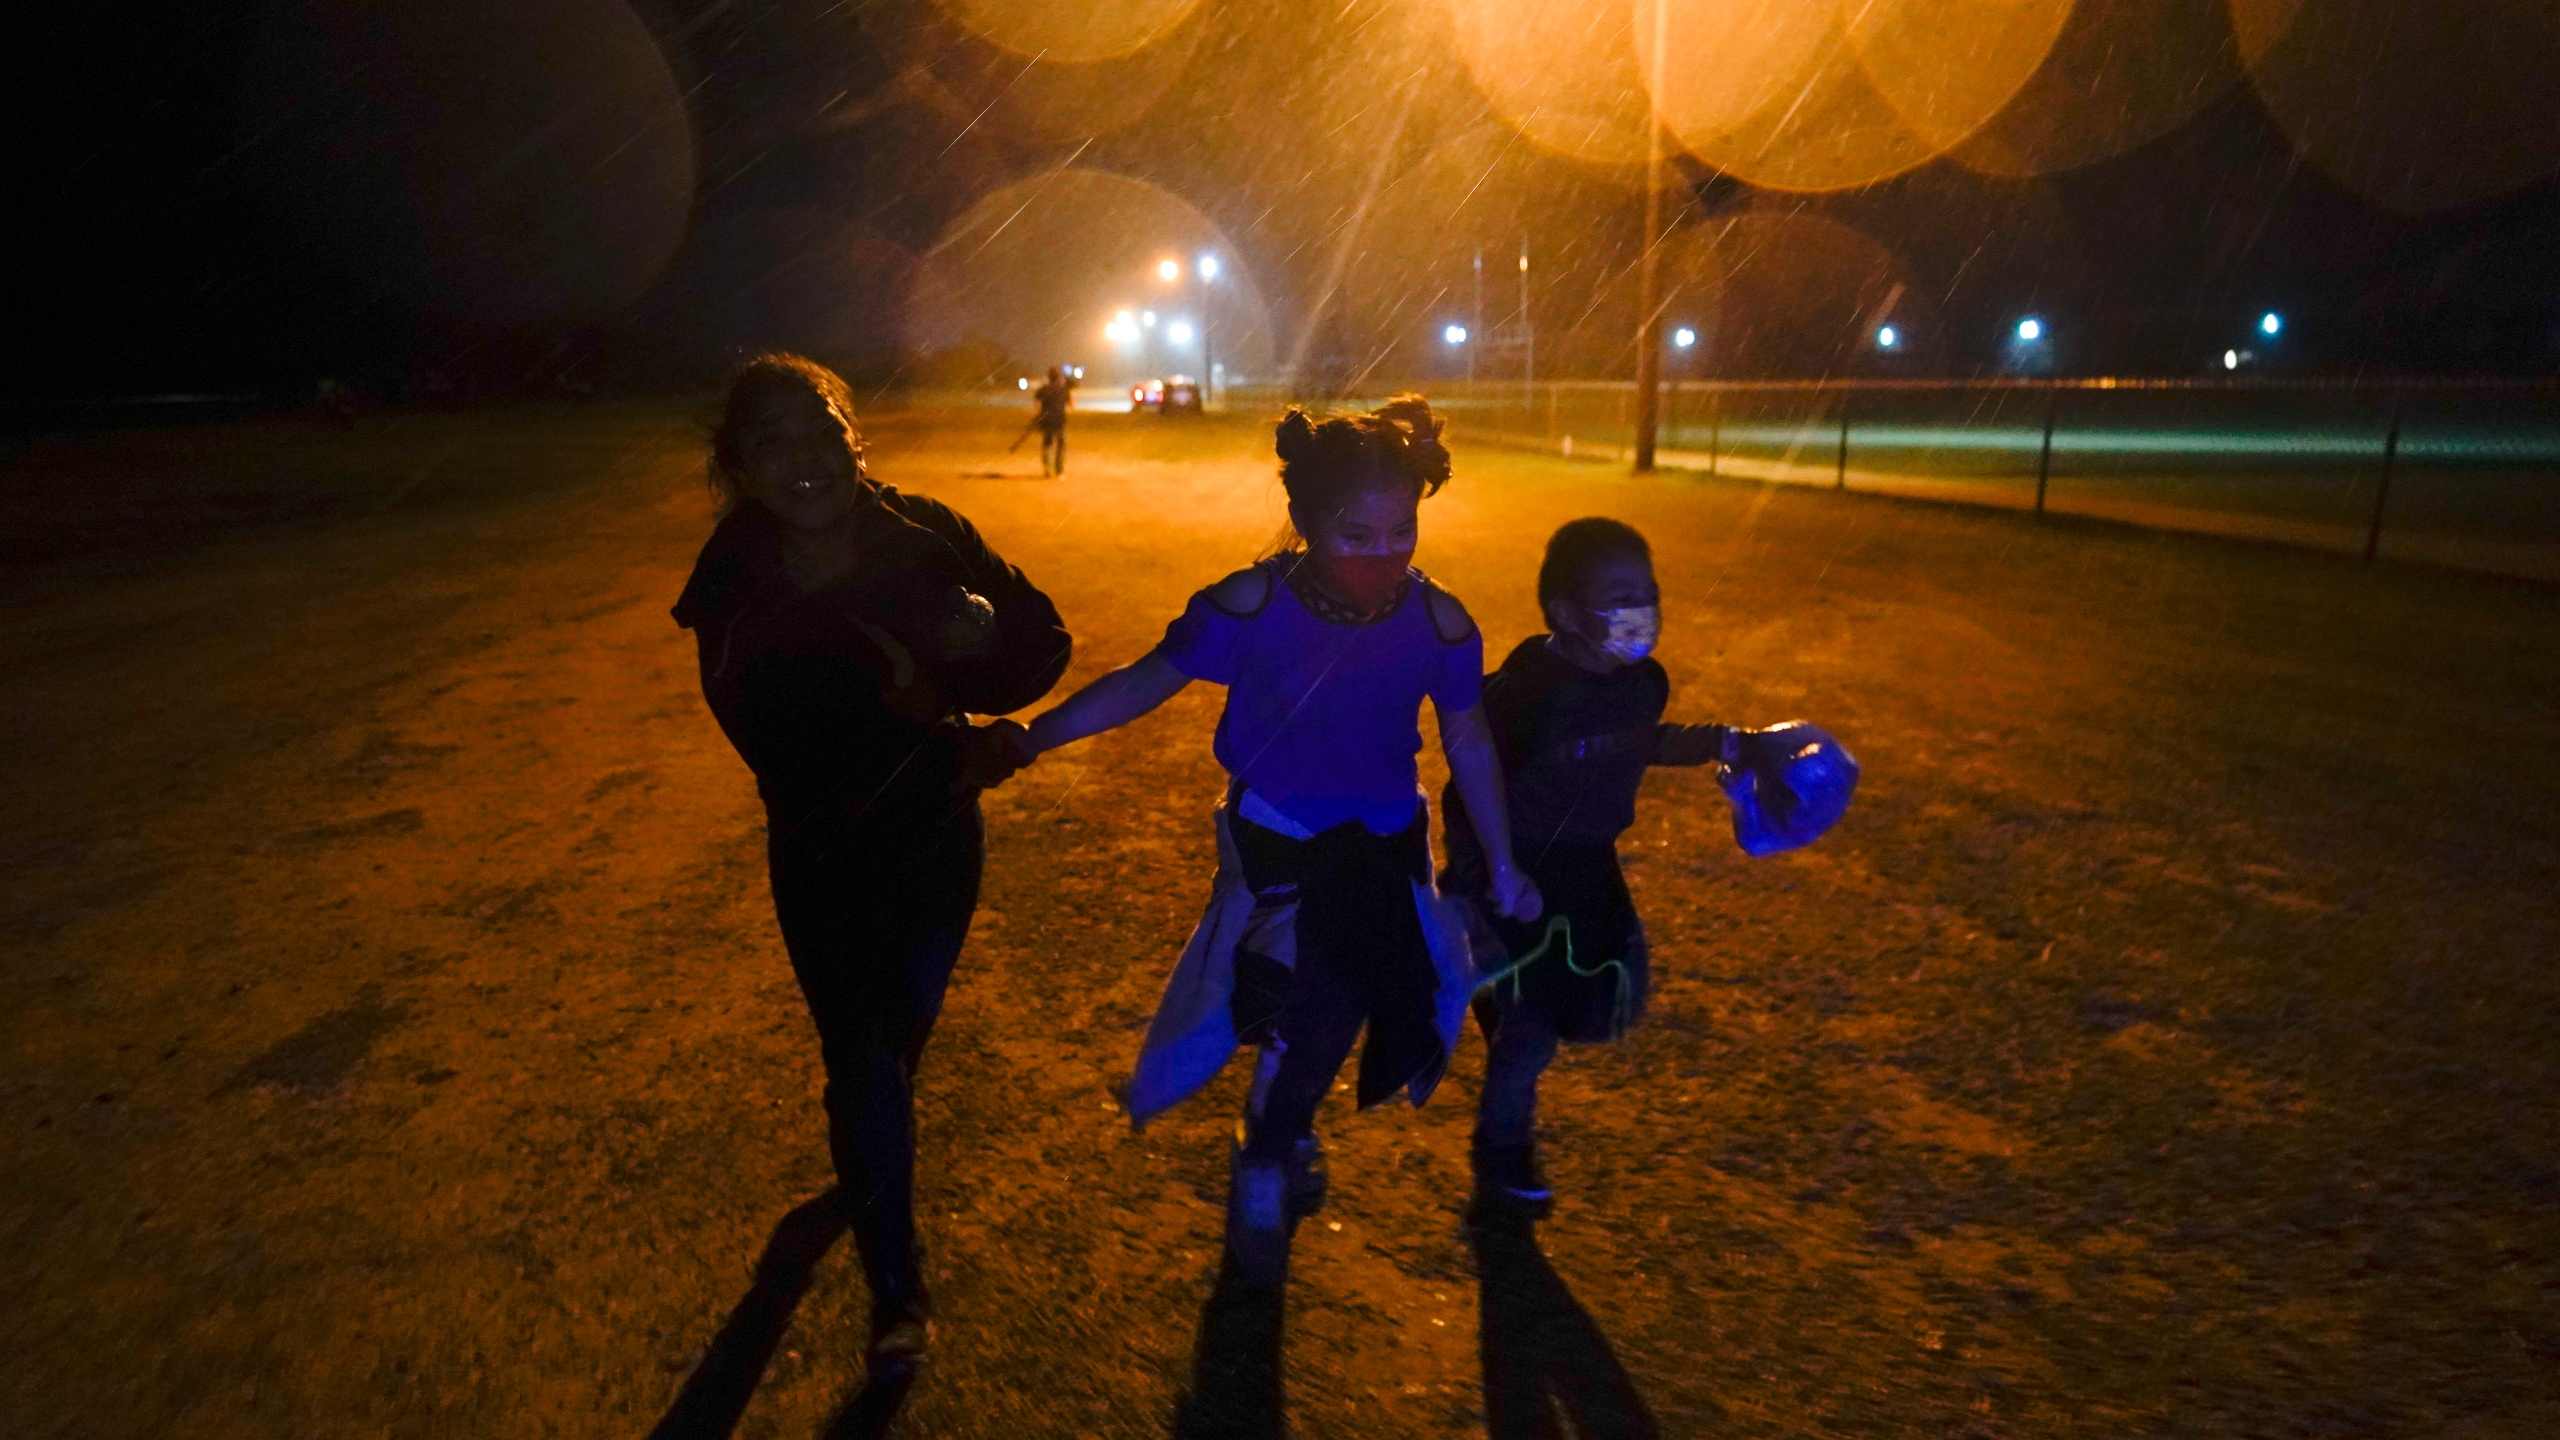 In this May 11, 2021, file photo, three young migrants hold hands as they run in the rain at an intake area after turning themselves in upon crossing the U.S.-Mexico border in Roma, Texas. Five months after the Biden administration declared an emergency and raced to set up shelters to house a record number of children crossing the U.S.-Mexico border alone, kids continue to languish at the sites, while more keep coming, child welfare advocates say. (AP Photo/Gregory Bull, File)